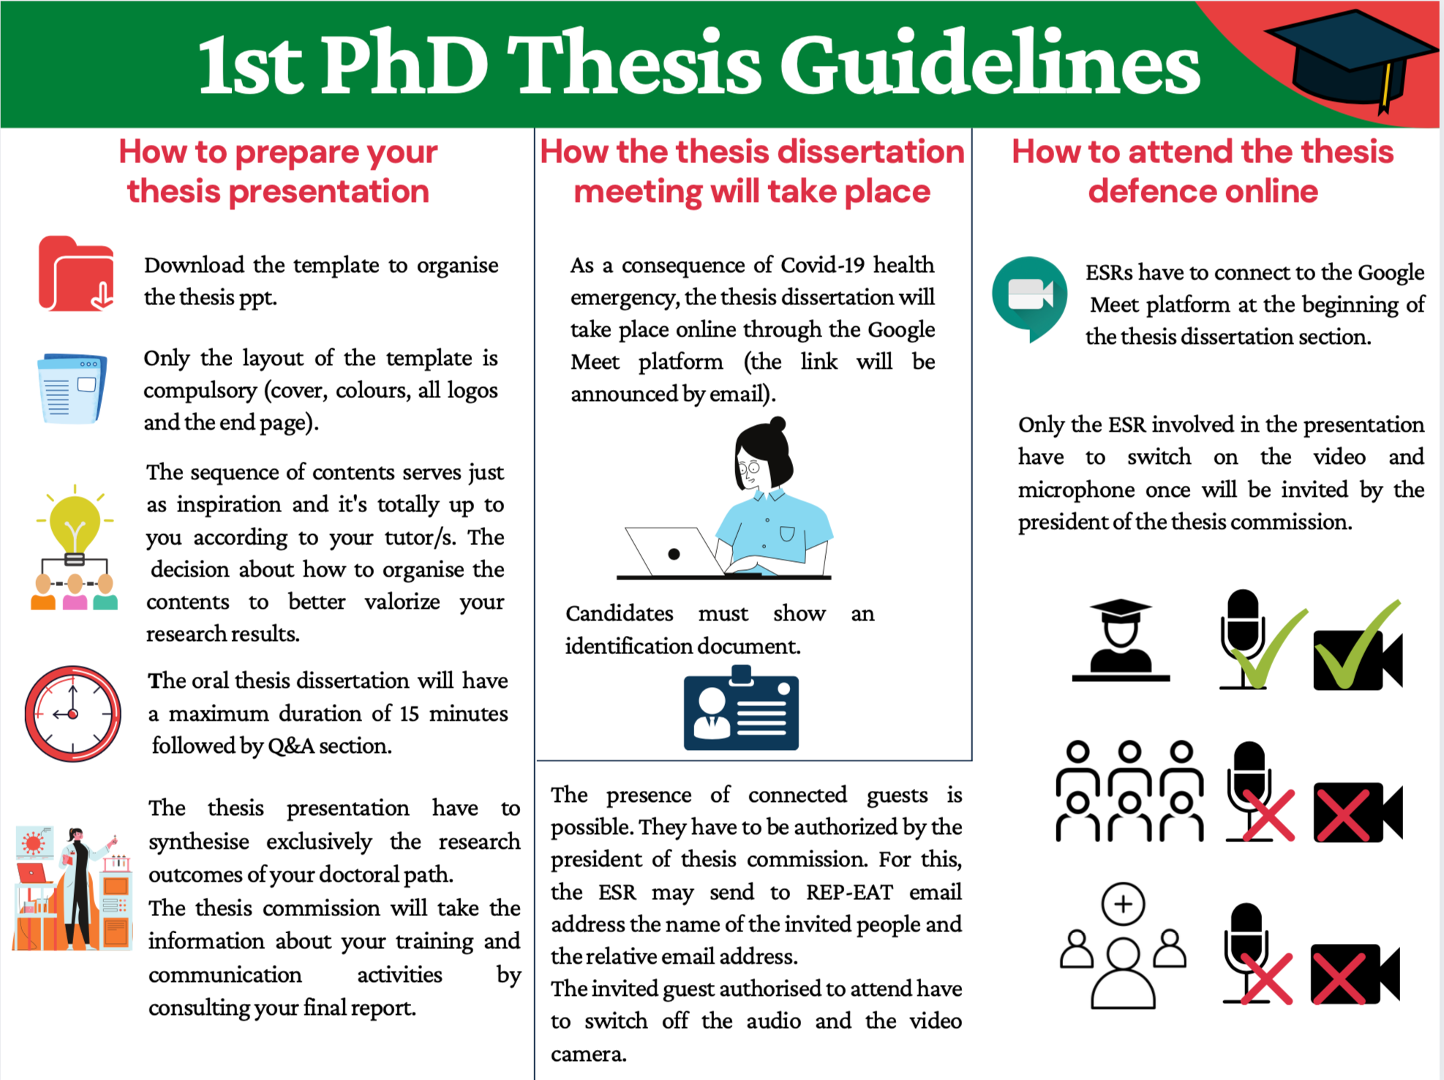 1st PhD Thesis Guidelines